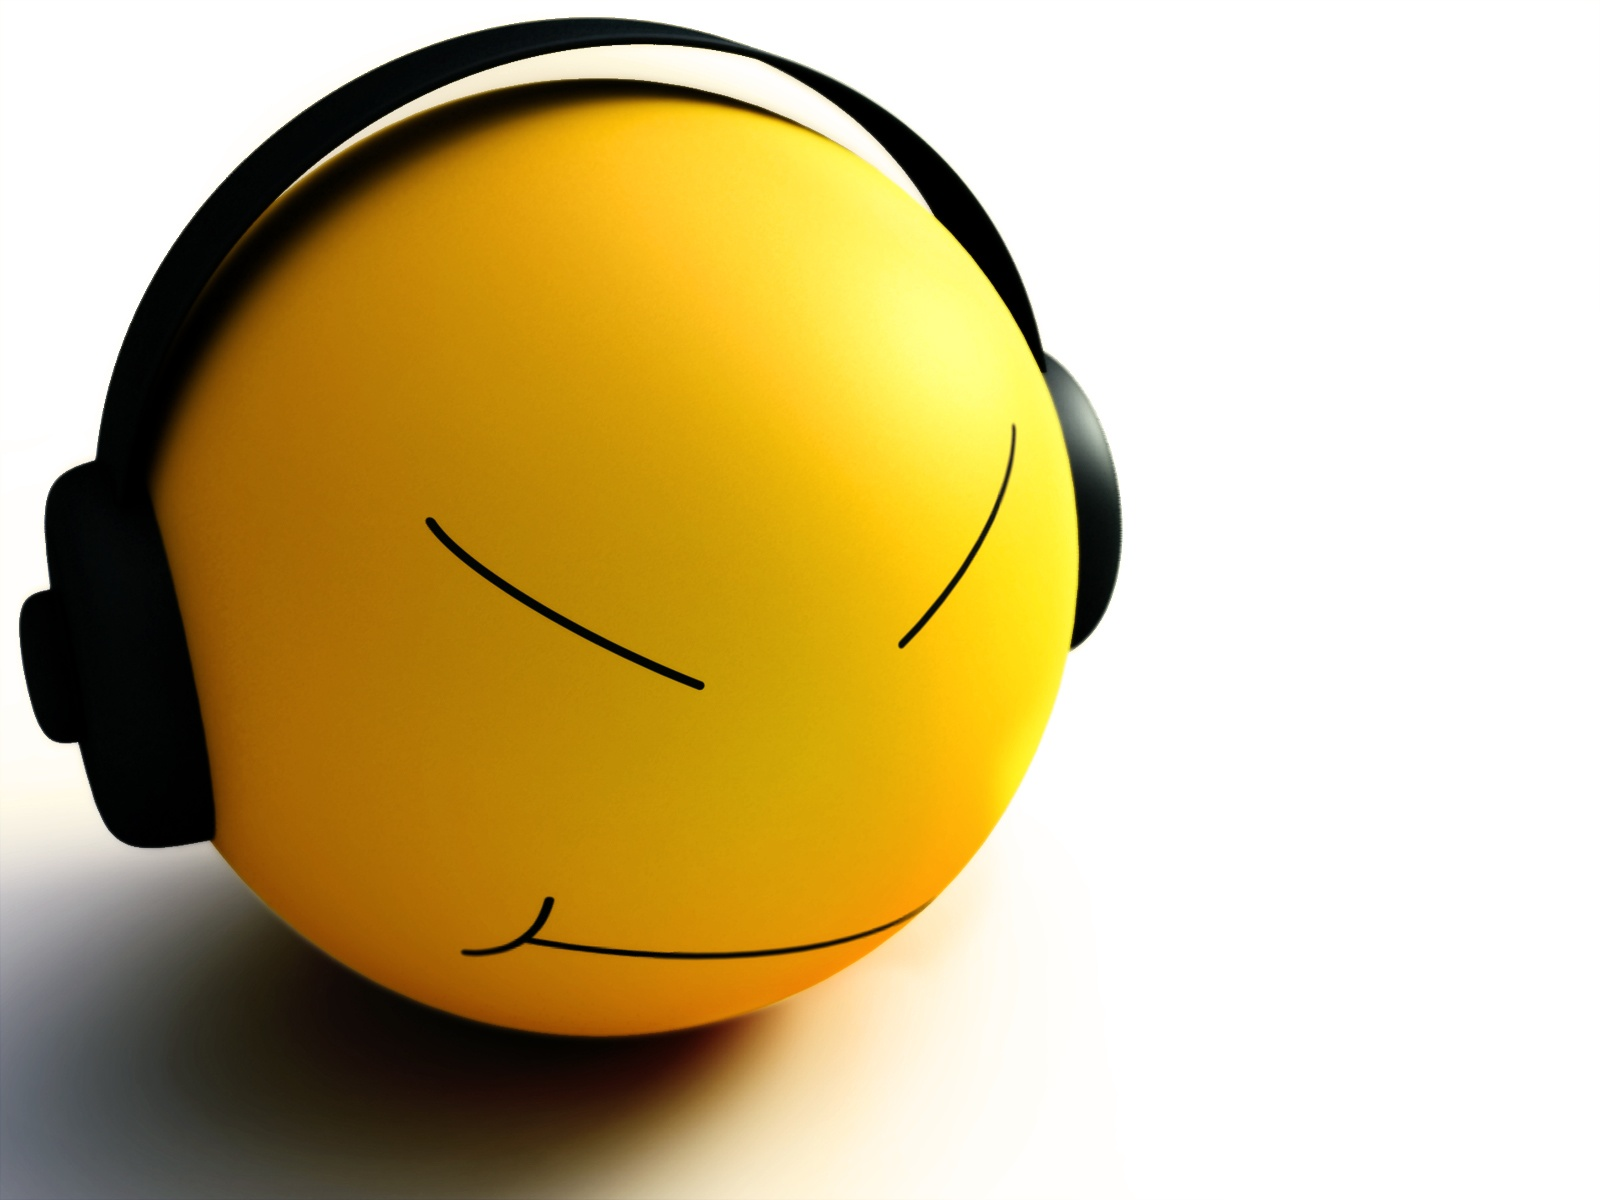 Free Smiley Listen Music phone wallpaper by chappie27